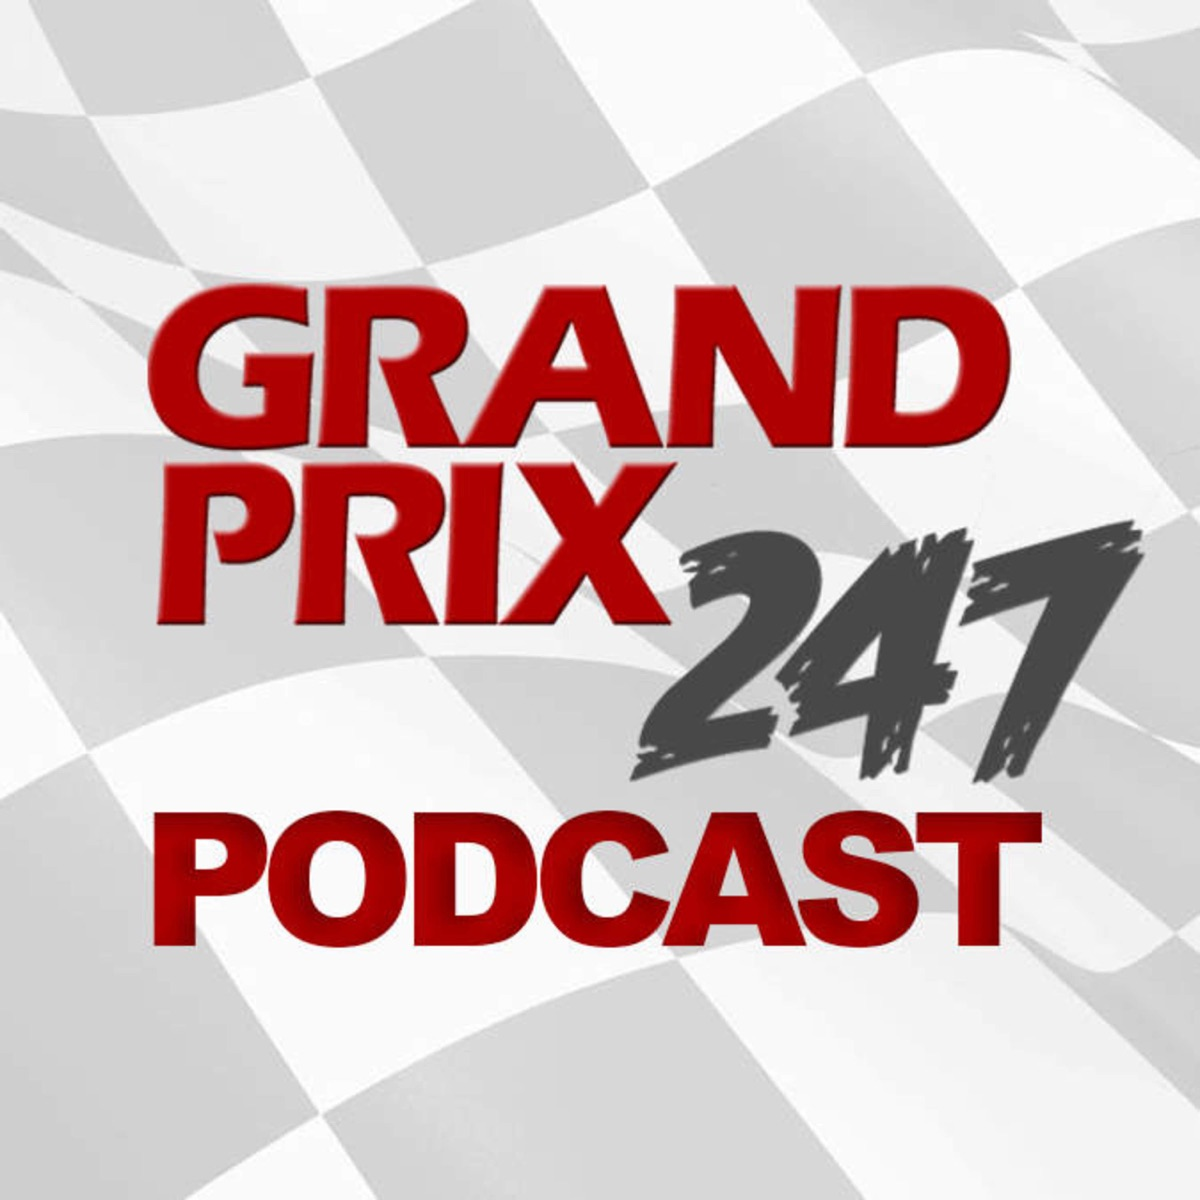 Grand Prix 247 Formula 1 Podcast